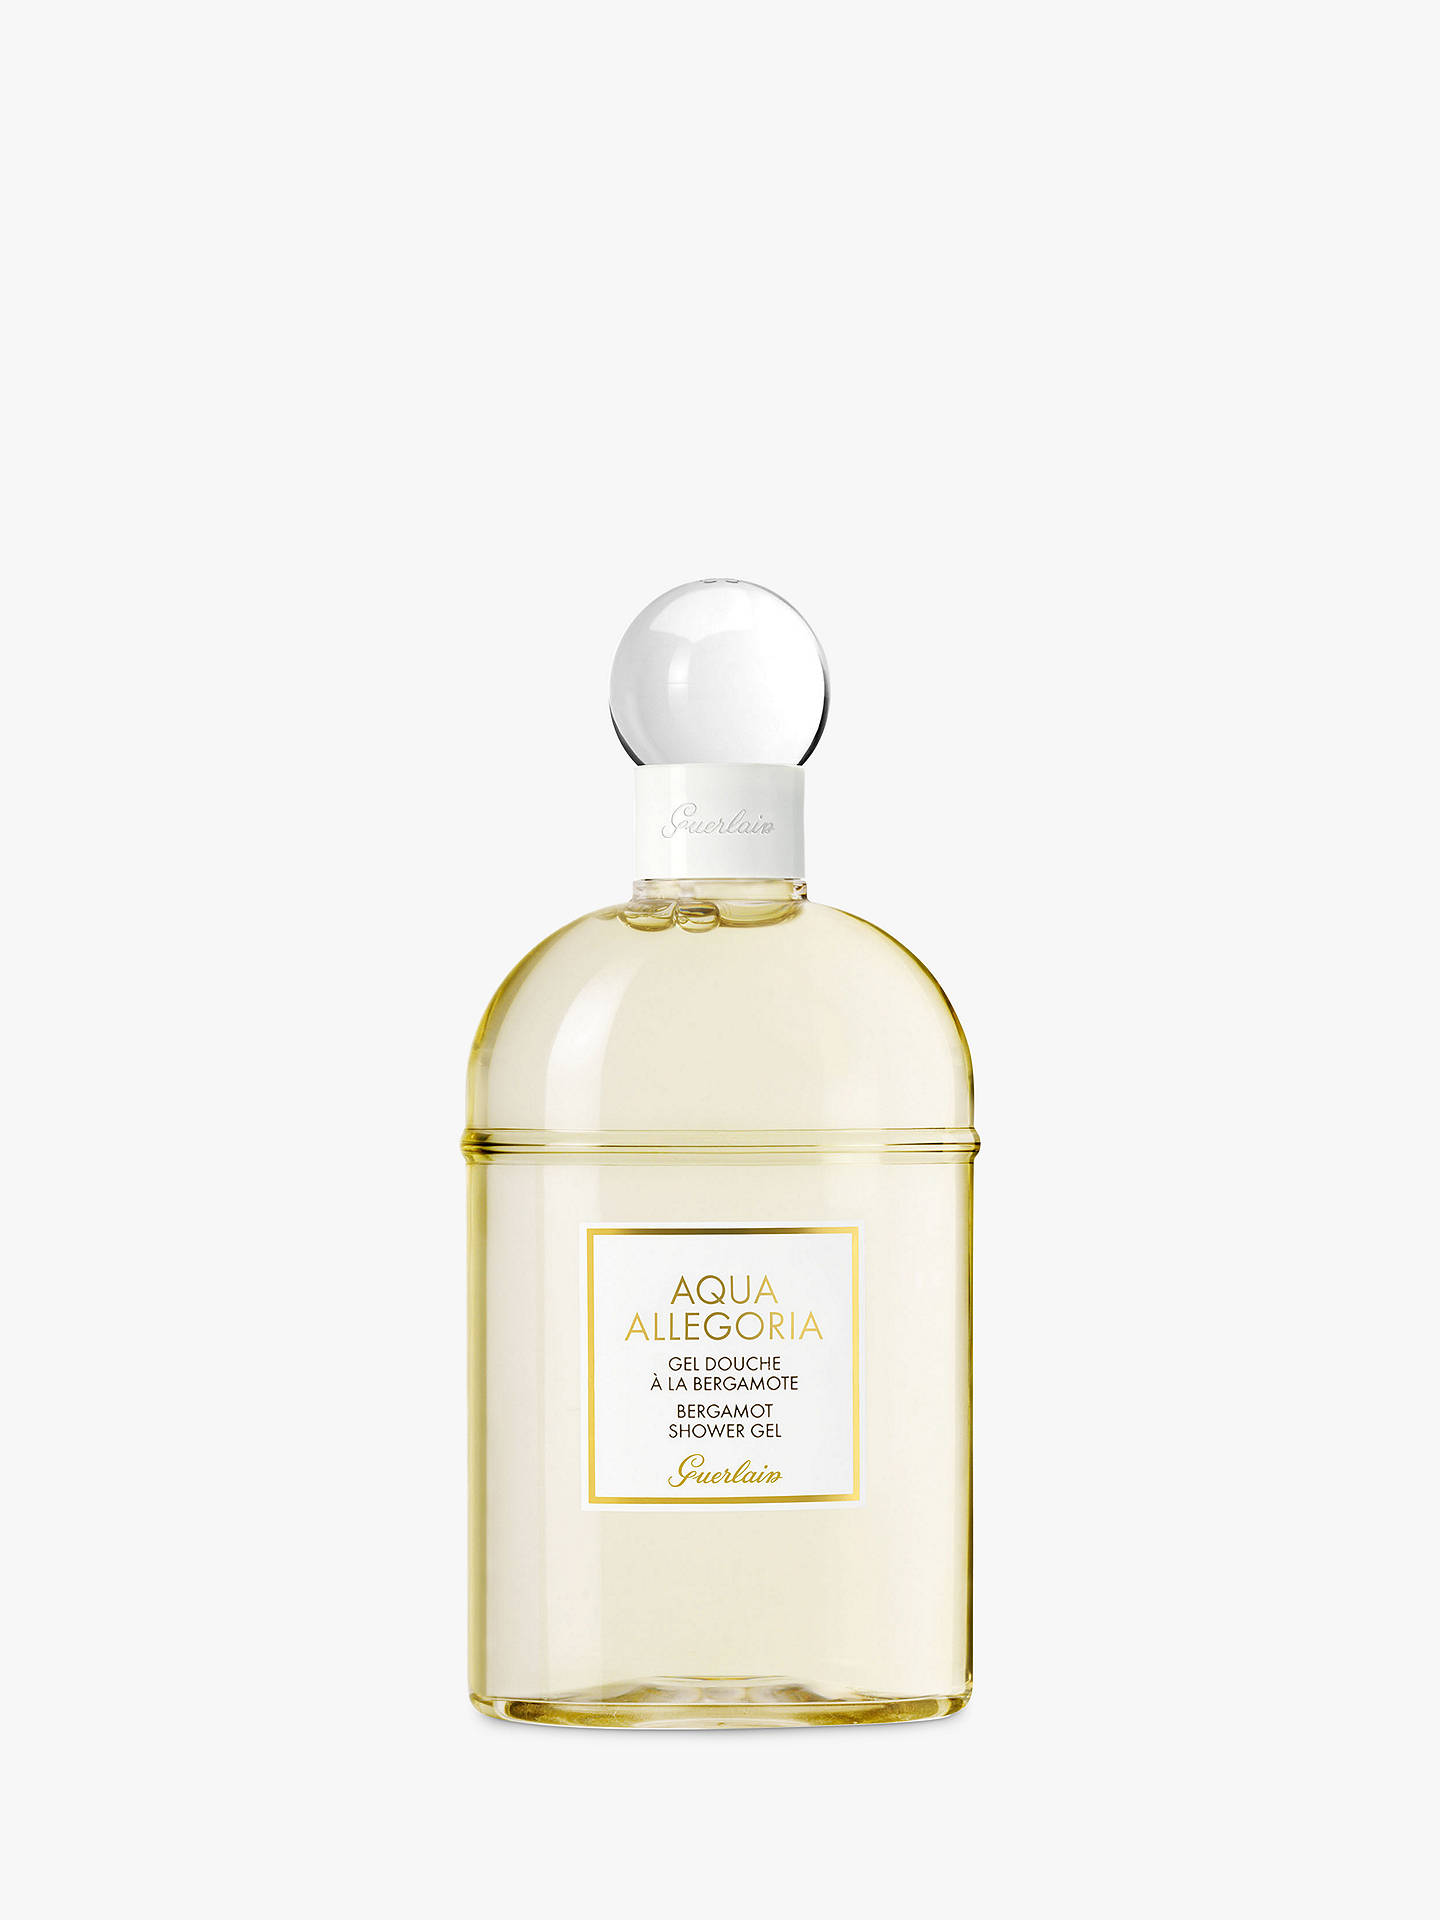 Buy Guerlain Aqua Allegoria Bergamot Shower Gel, 200ml Online at johnlewis.com